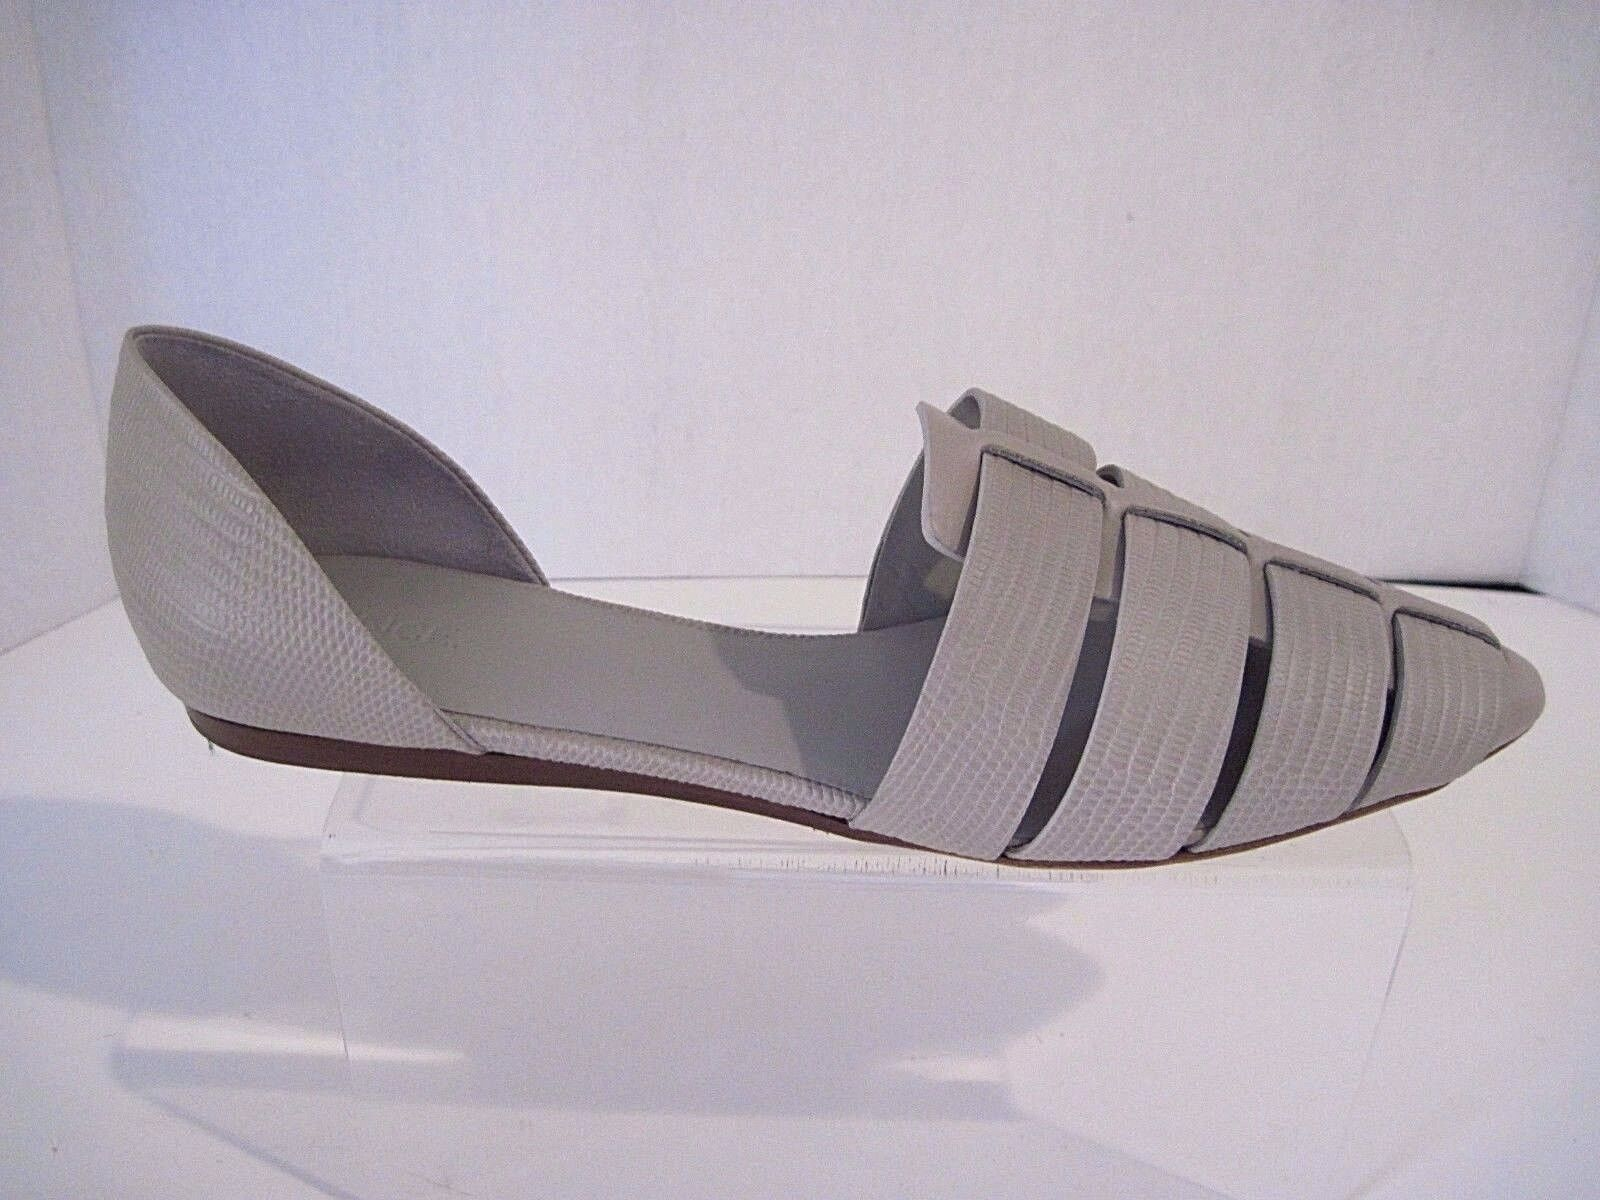 350 Vince d'Orsay Flats Reptile Embossed Taupe, Sz 39.5   9.5